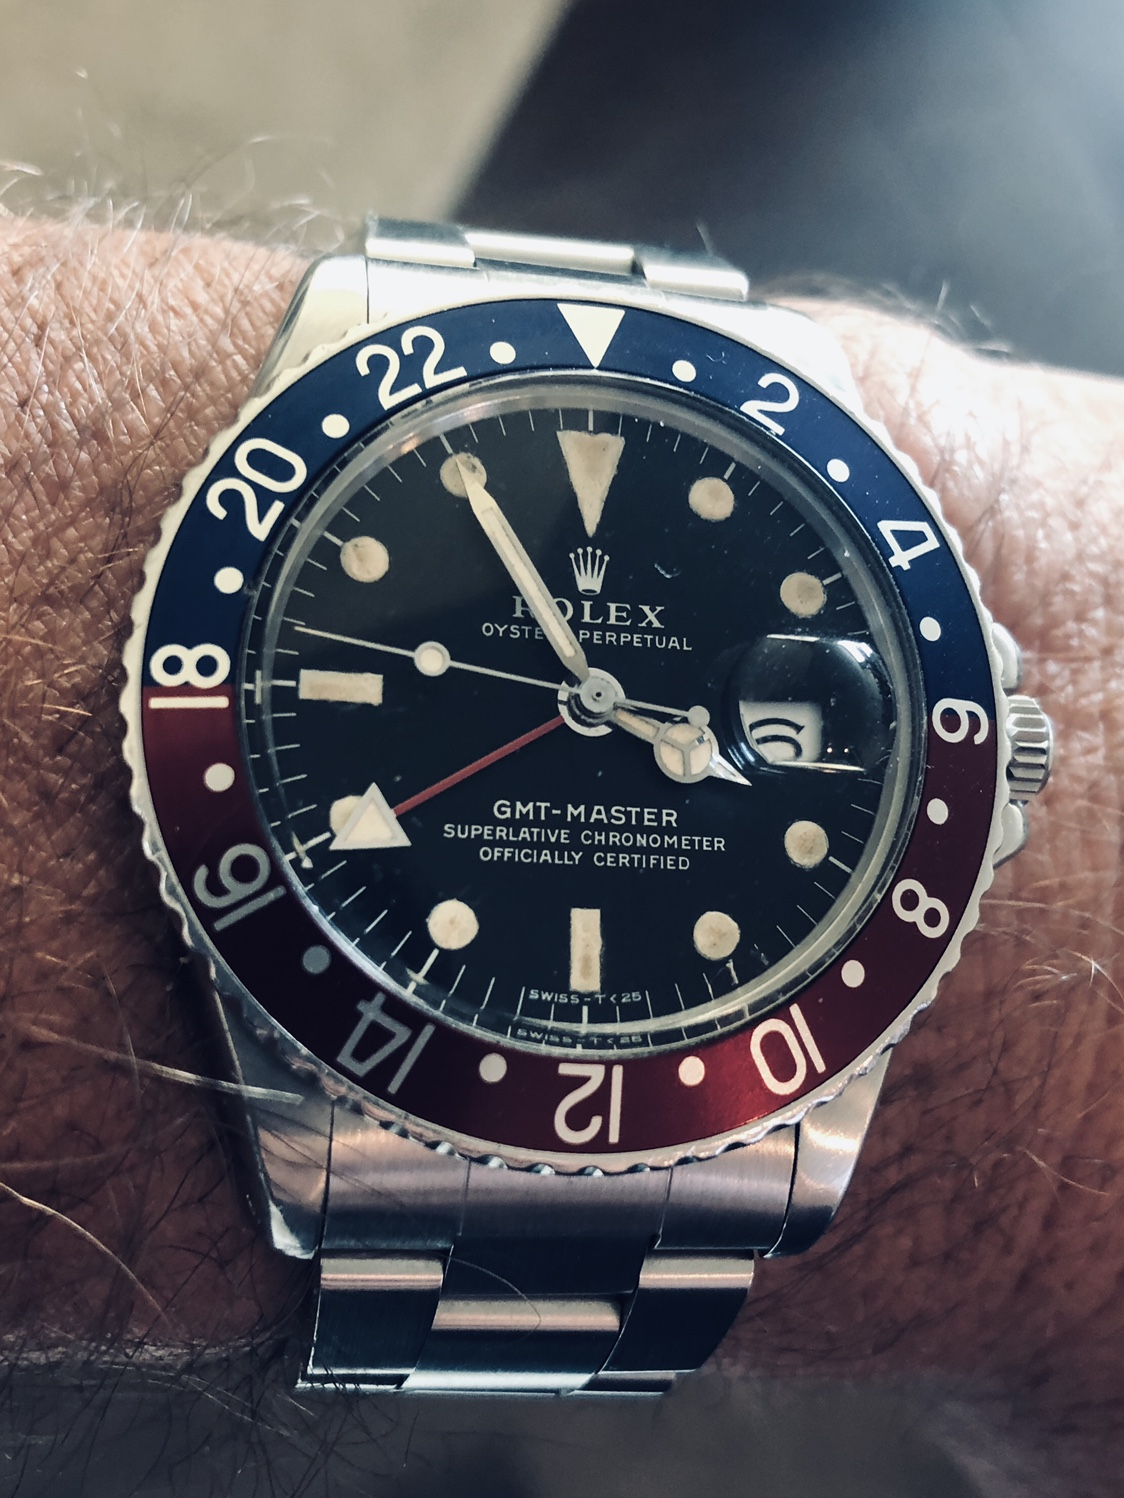 Your first, current, and next Rolex    - Rolex Forums - Rolex Watch